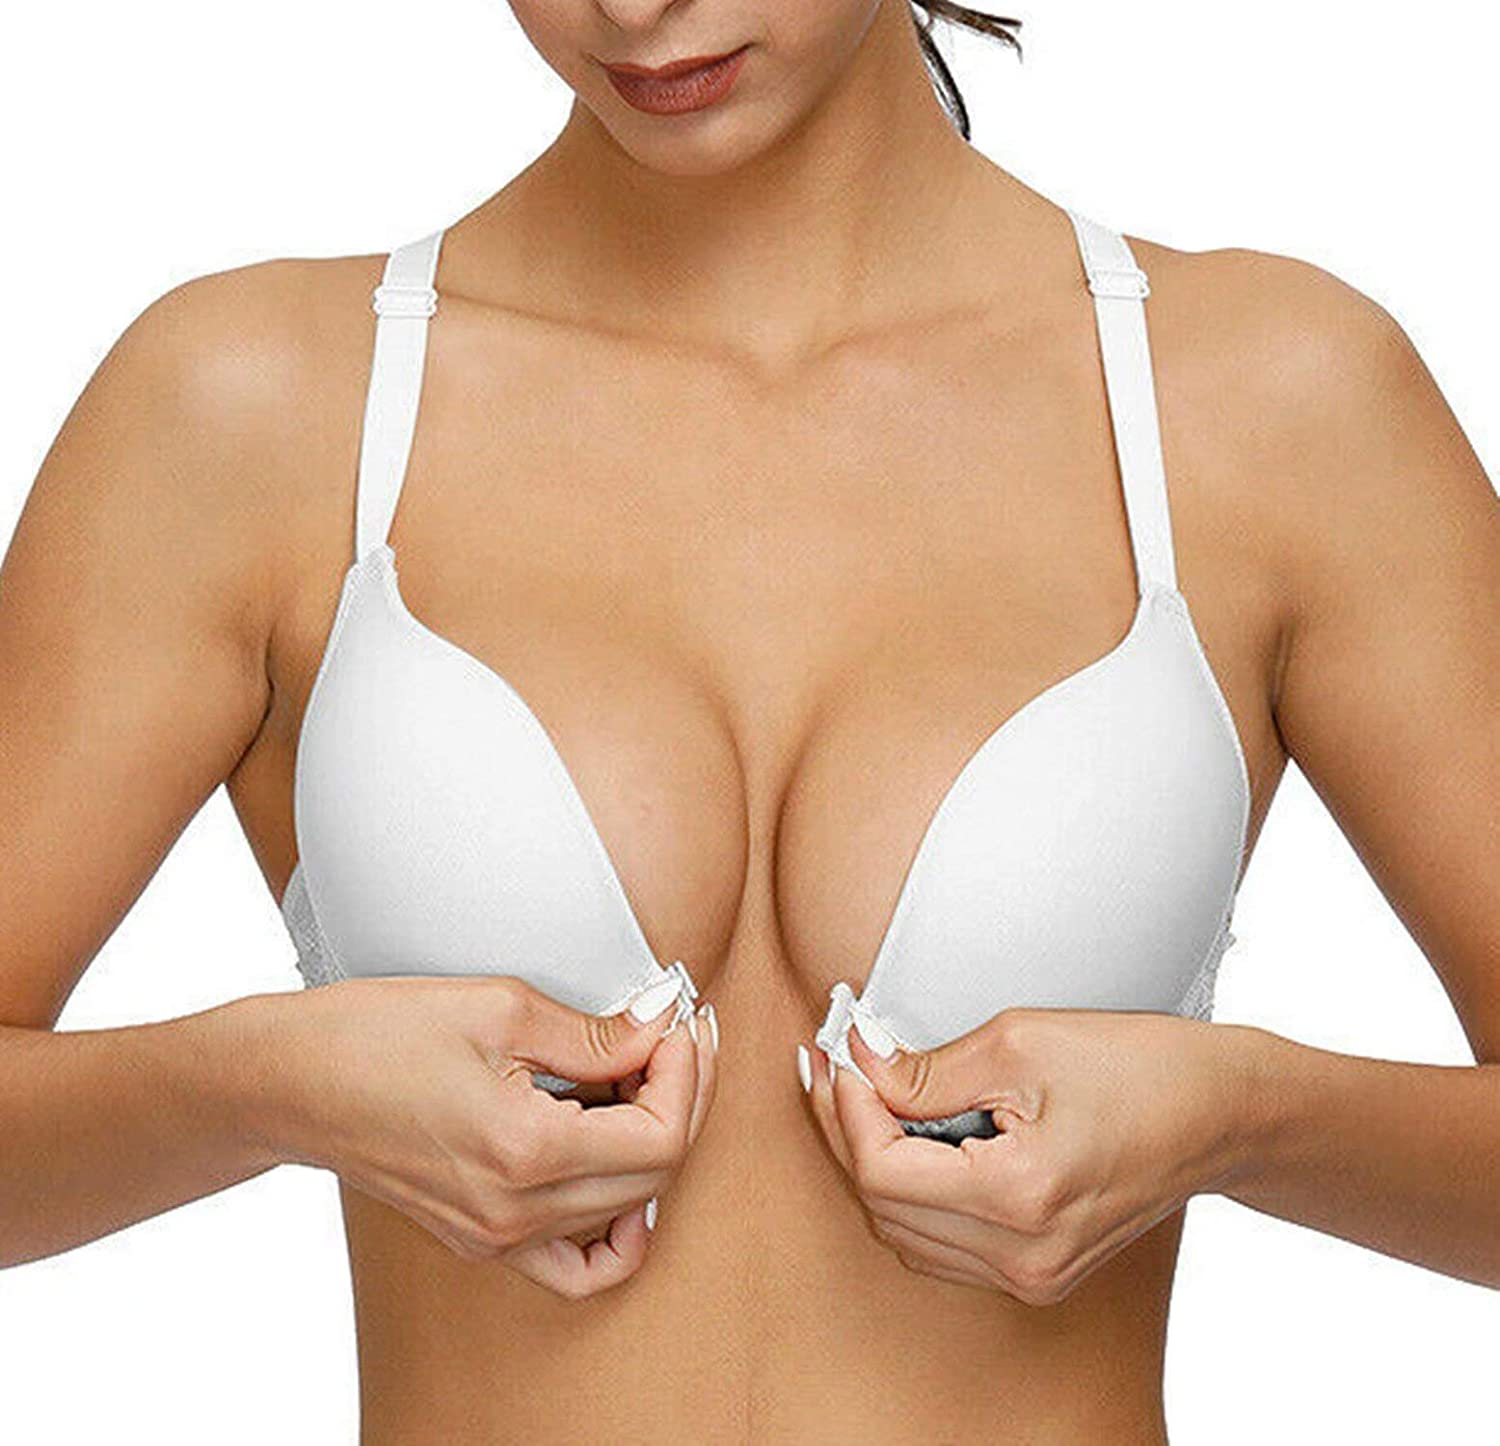 Womens Front Closure Push Up Bra Underwired Padded Max Support Lifts Cleavage Lace T-Back Racerback